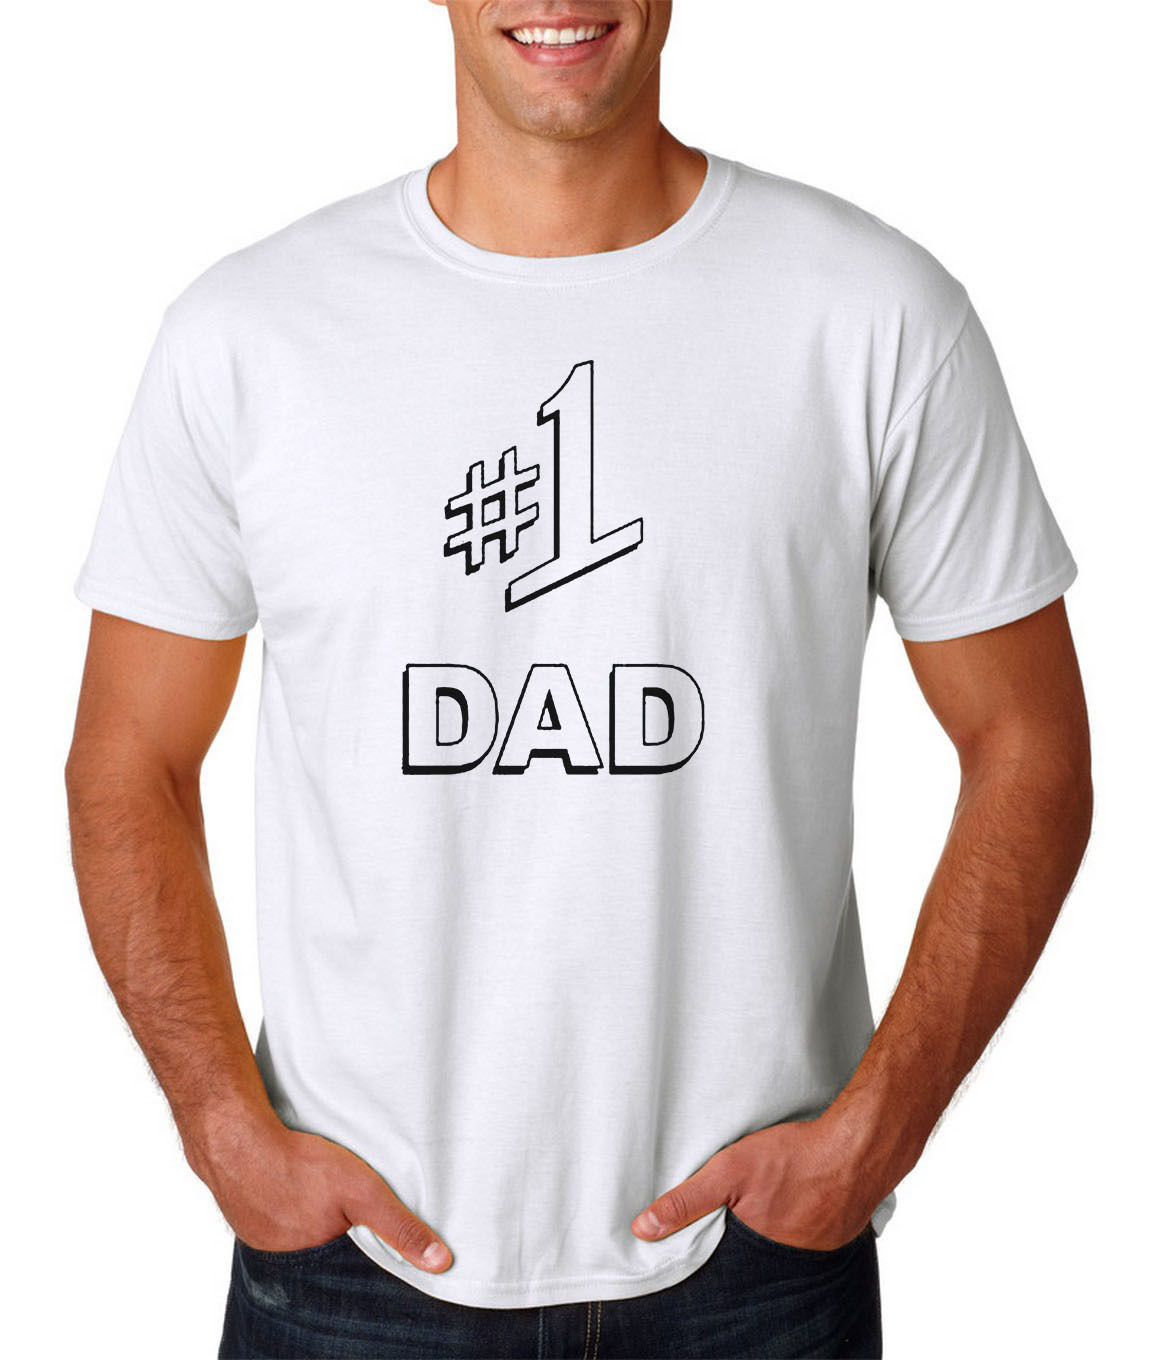 #1 DAD Jerry SEINFELD Larry David Father/'s Day Number 1 T-Shirt SIZES S-5X